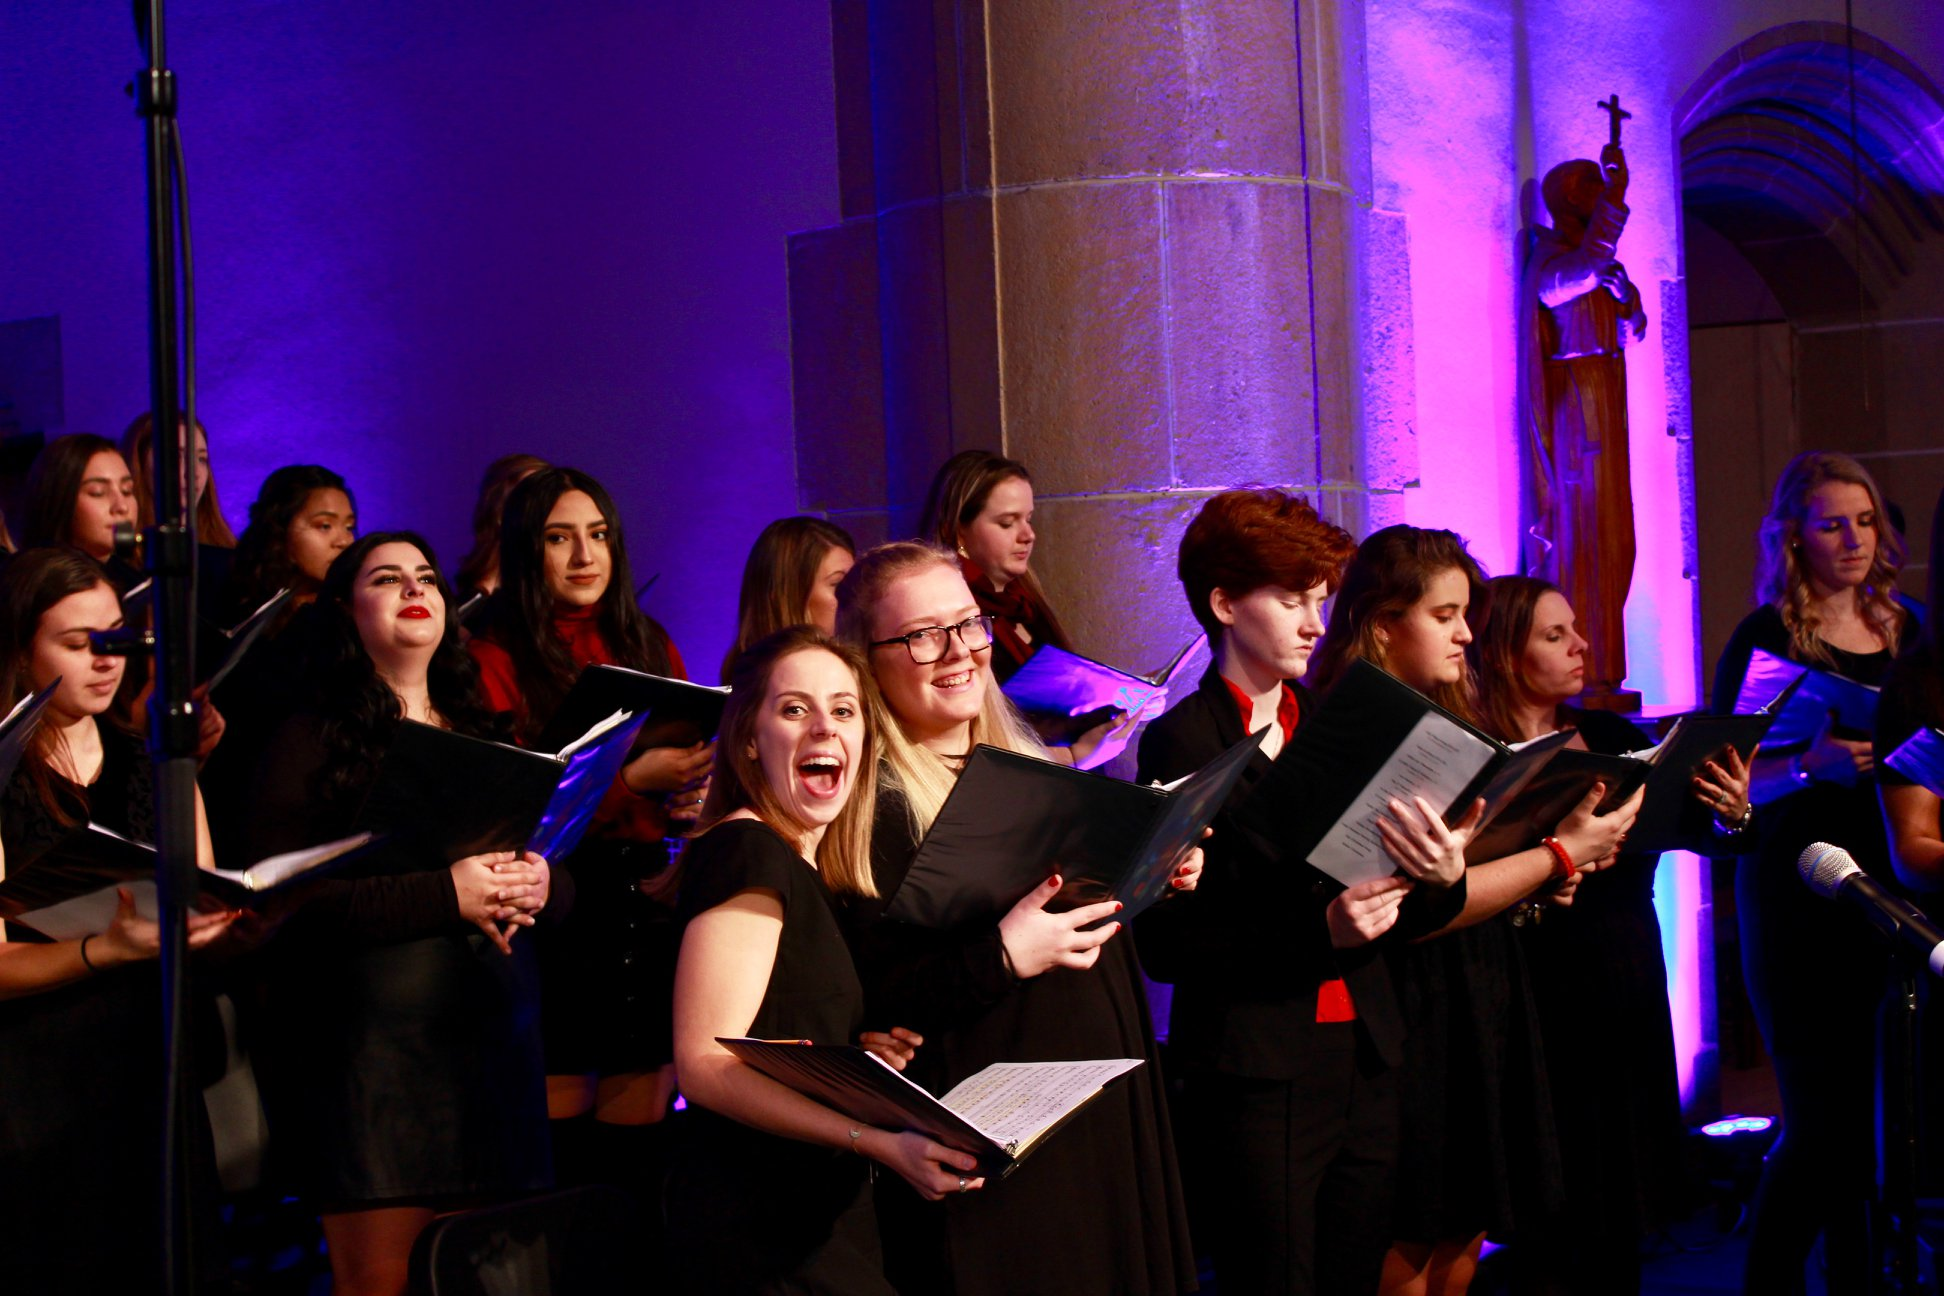 Students sang carols during this month's annual Festival of Lessons and Carols at Loyola University Maryland (photo by Claire Hammerschmidt;   click here for more photos from Loyola's Festival of Lessons and Carols  )